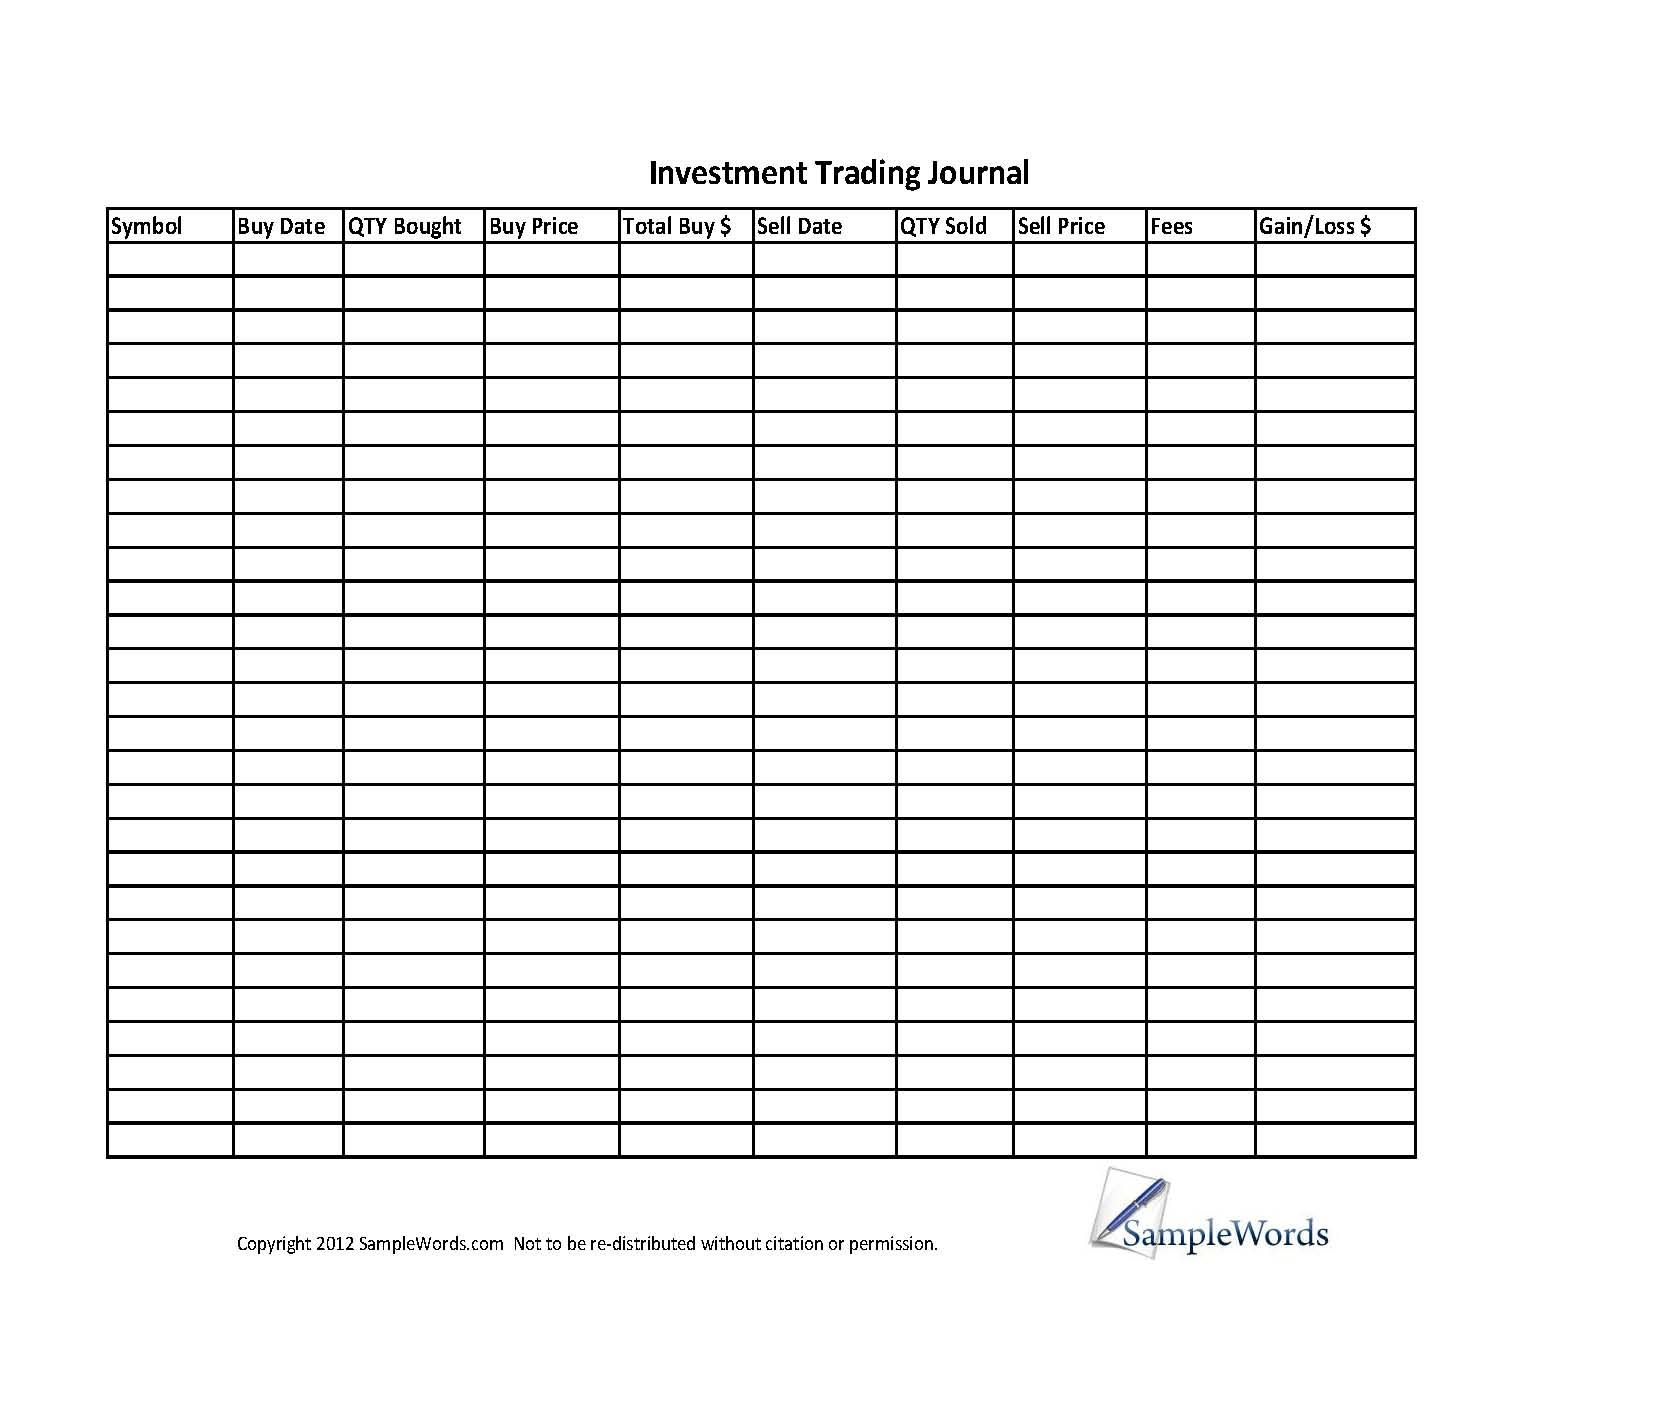 Share Trading Record Keeping Excel Investment Stock Trading Journal Spreadsheet Personal